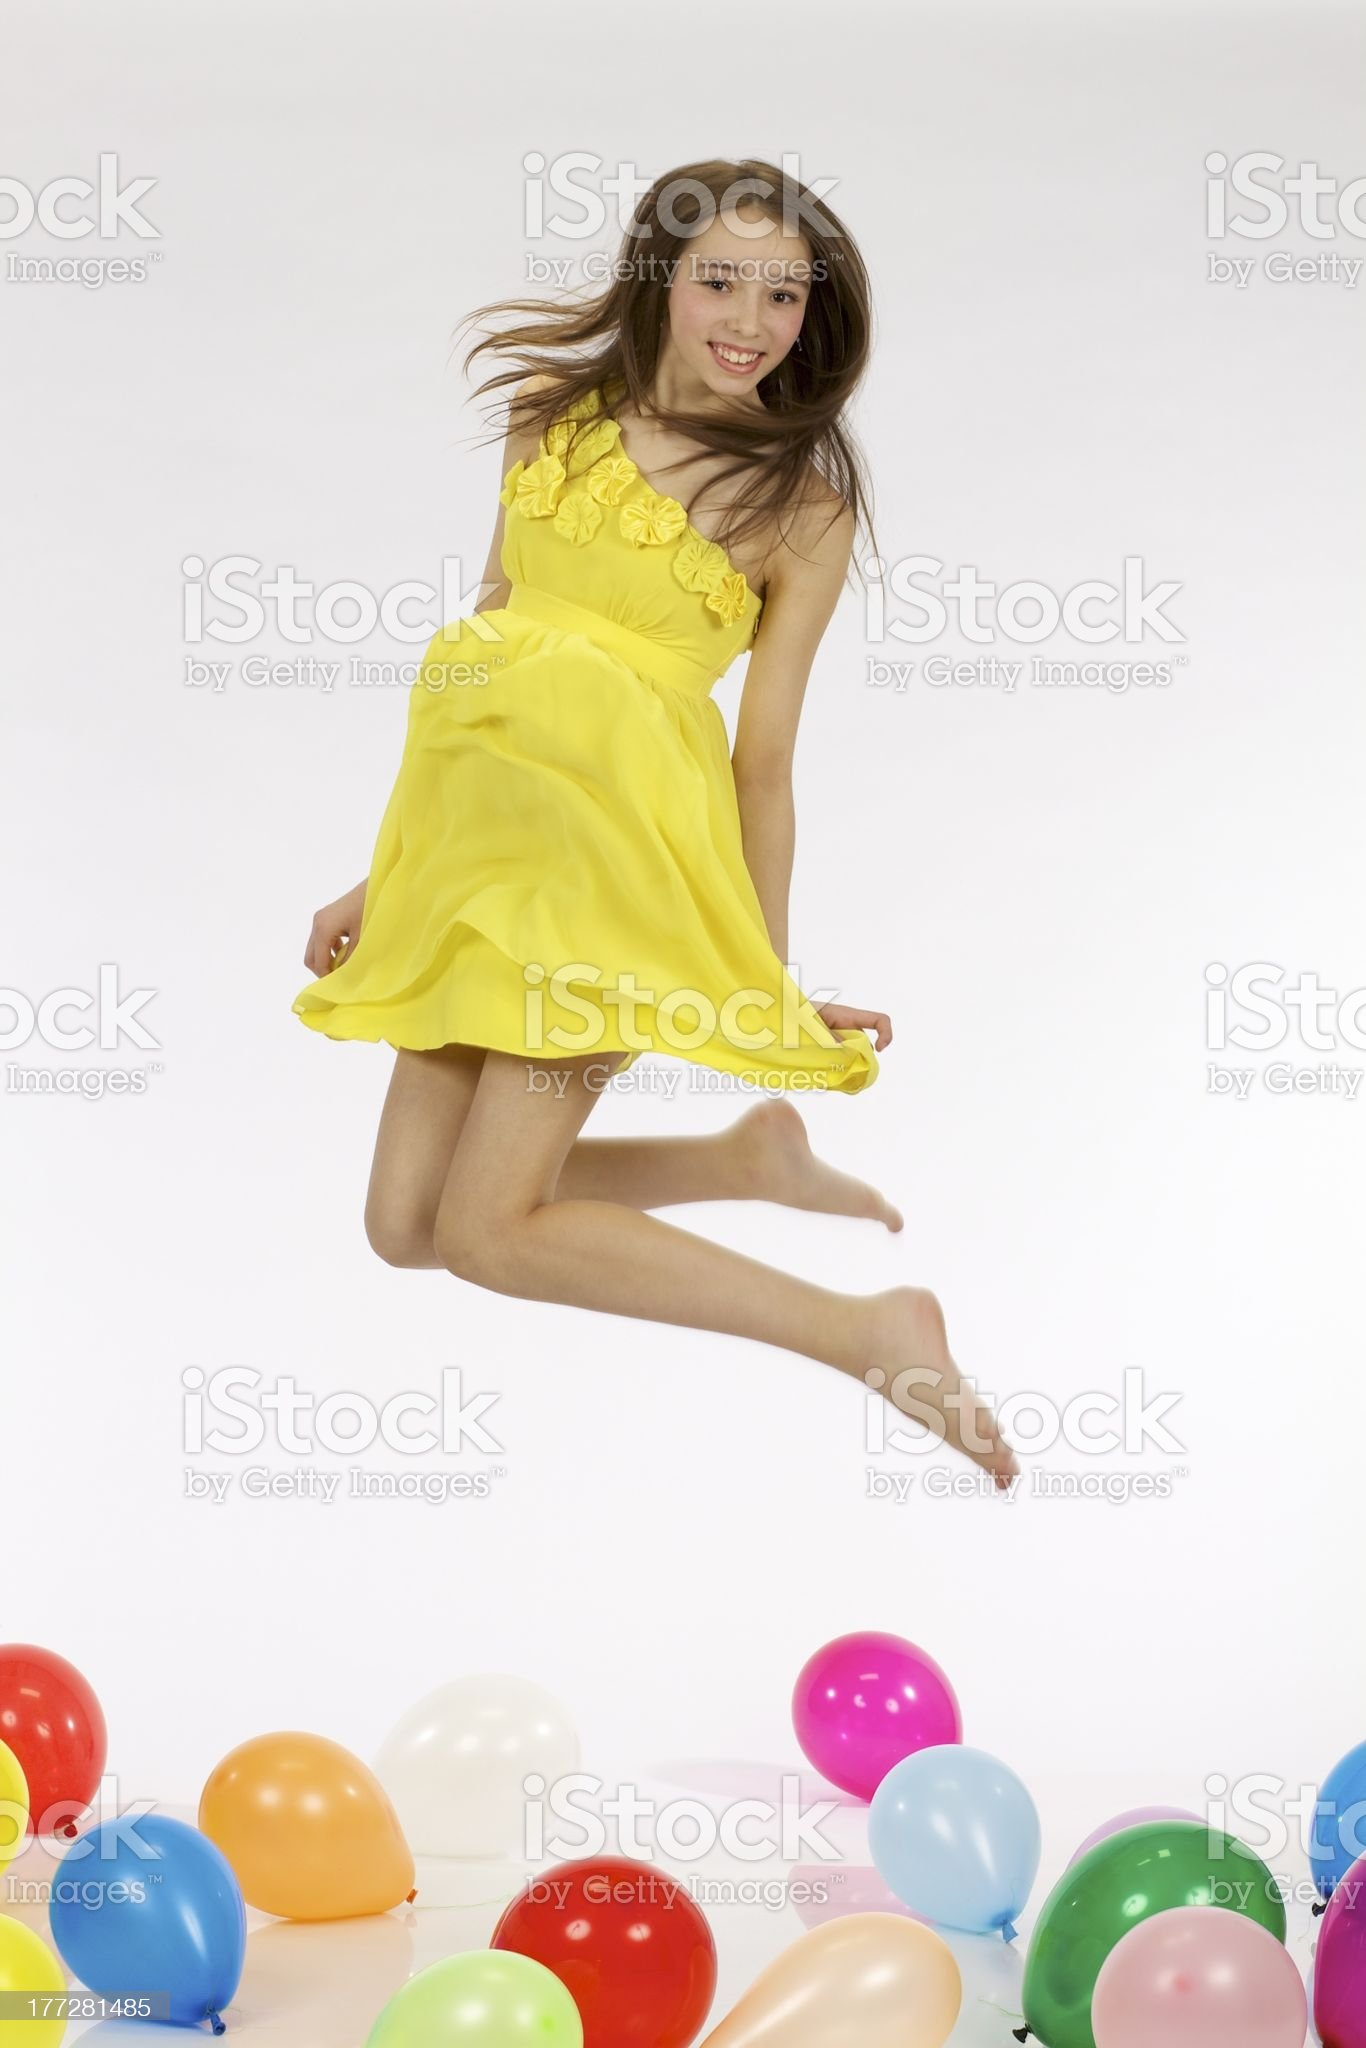 Teenage girl with balloons royalty-free stock photo